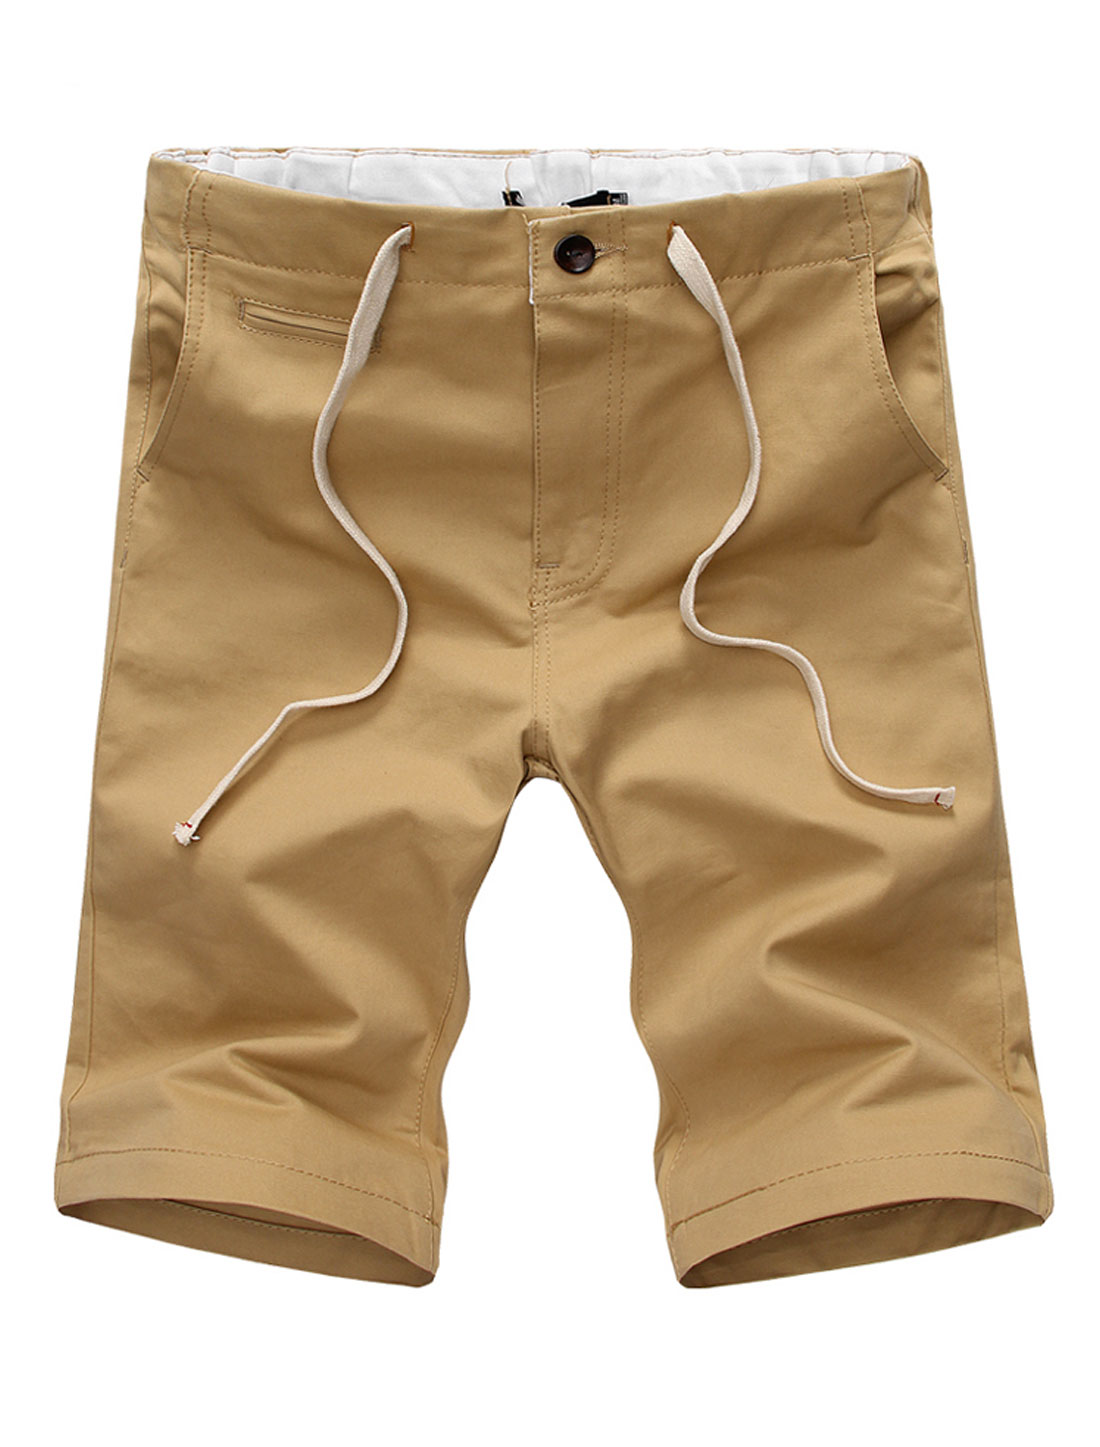 Men Stretch Waist One Fake Welt Pocket Front Loose Fit Shorts Khaki W38